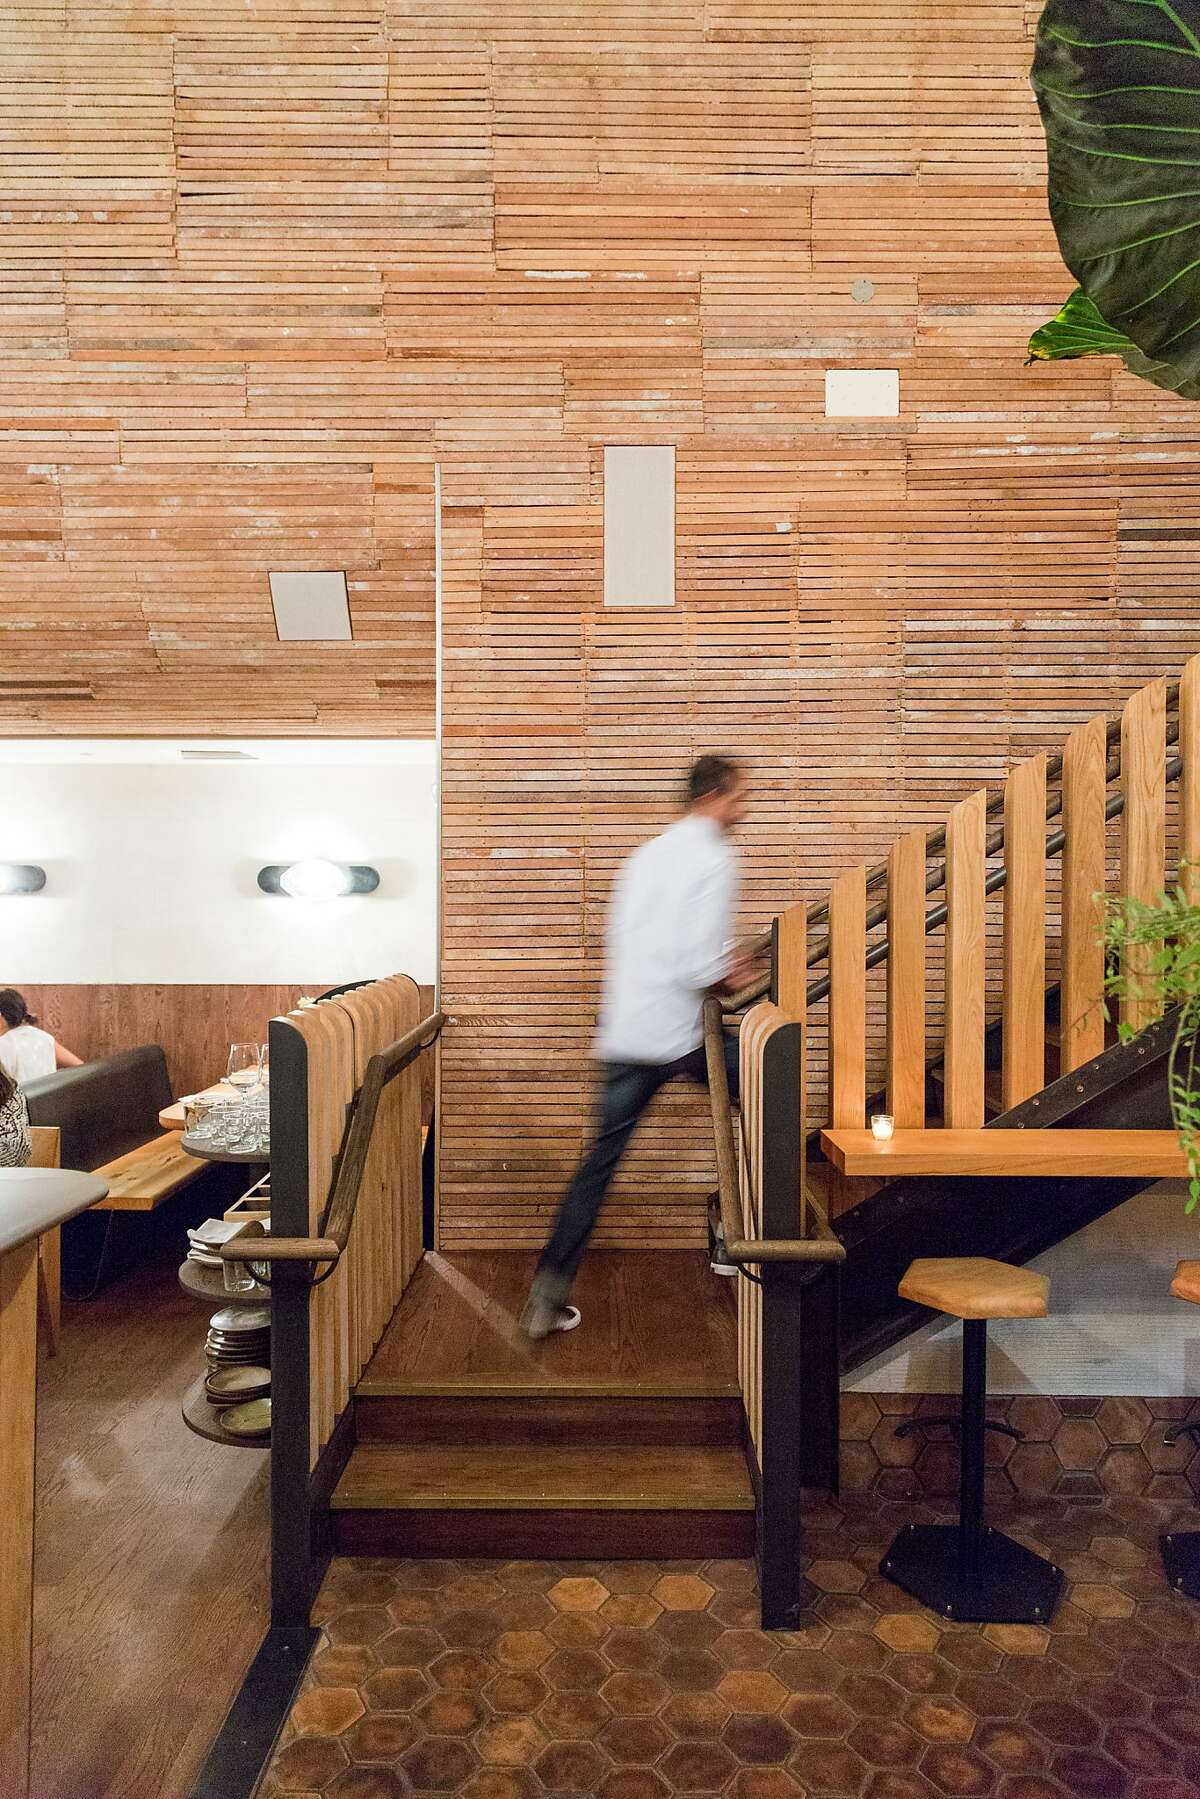 The original plaster was removed from the wood-slat walls exposing the architecture of the building at The Progress restaurant in San Francisco, Calif., Wednesday, February 4, 2015.